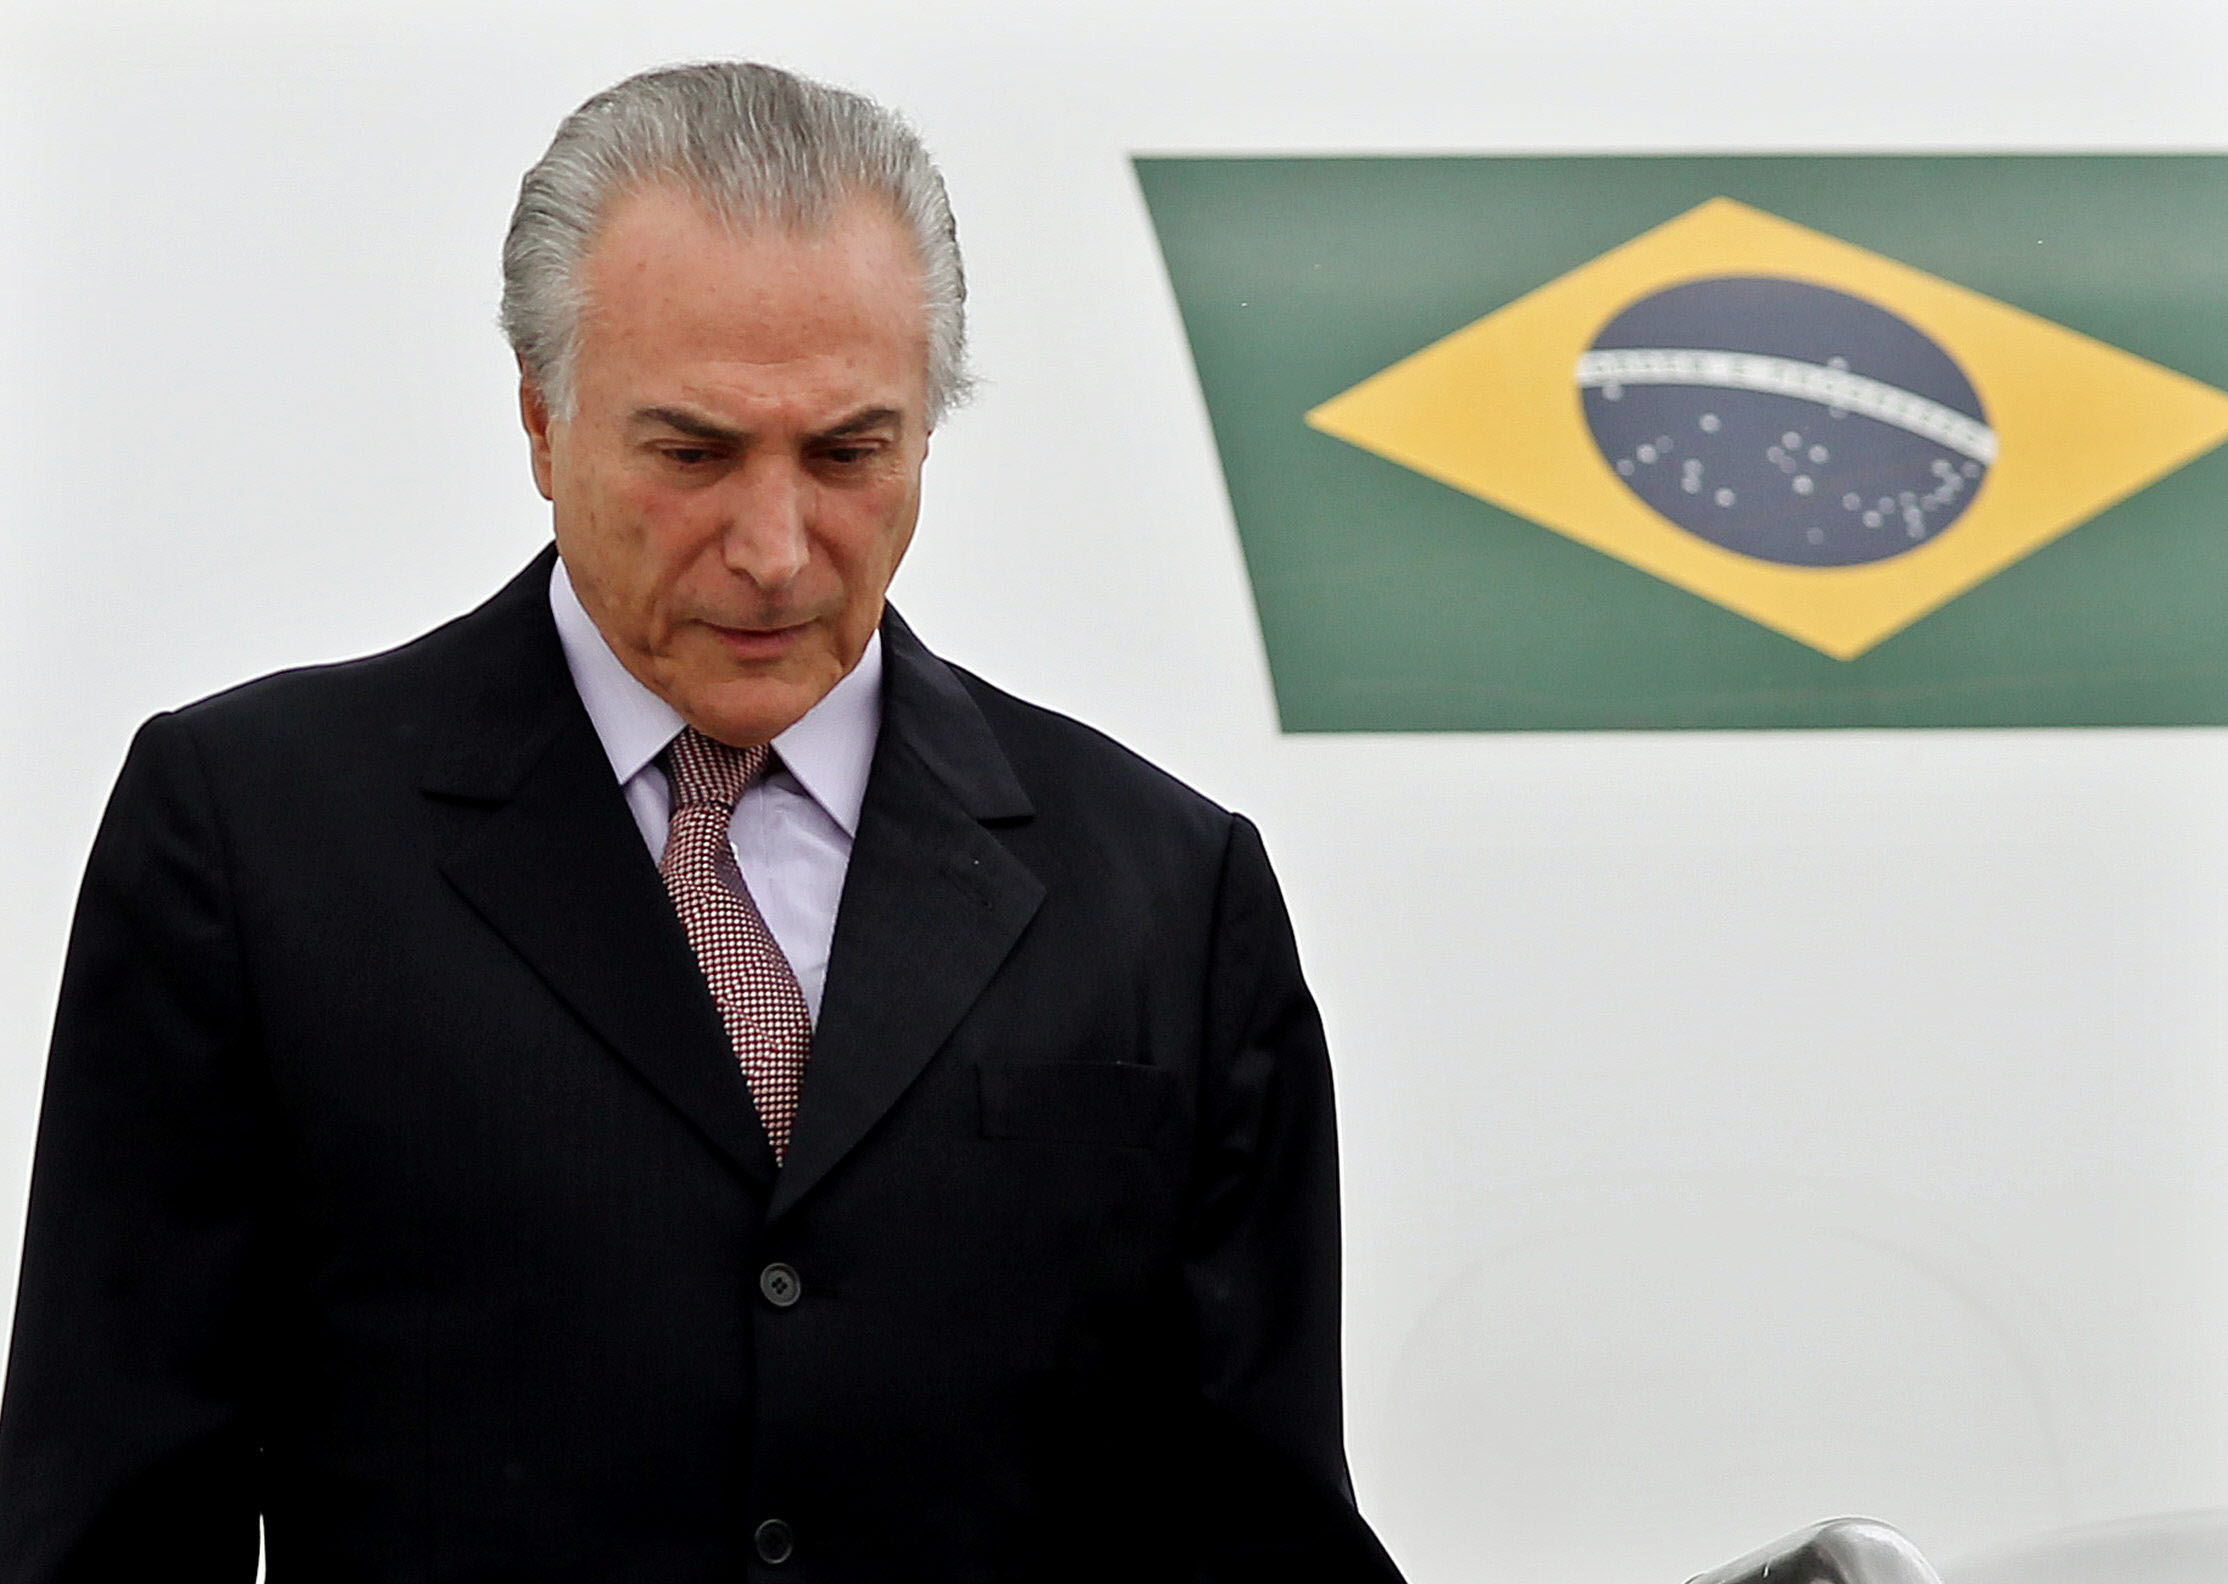 Temer estaria disposto a fortalecer parceria com a China e aumentar intercâmbio comercial